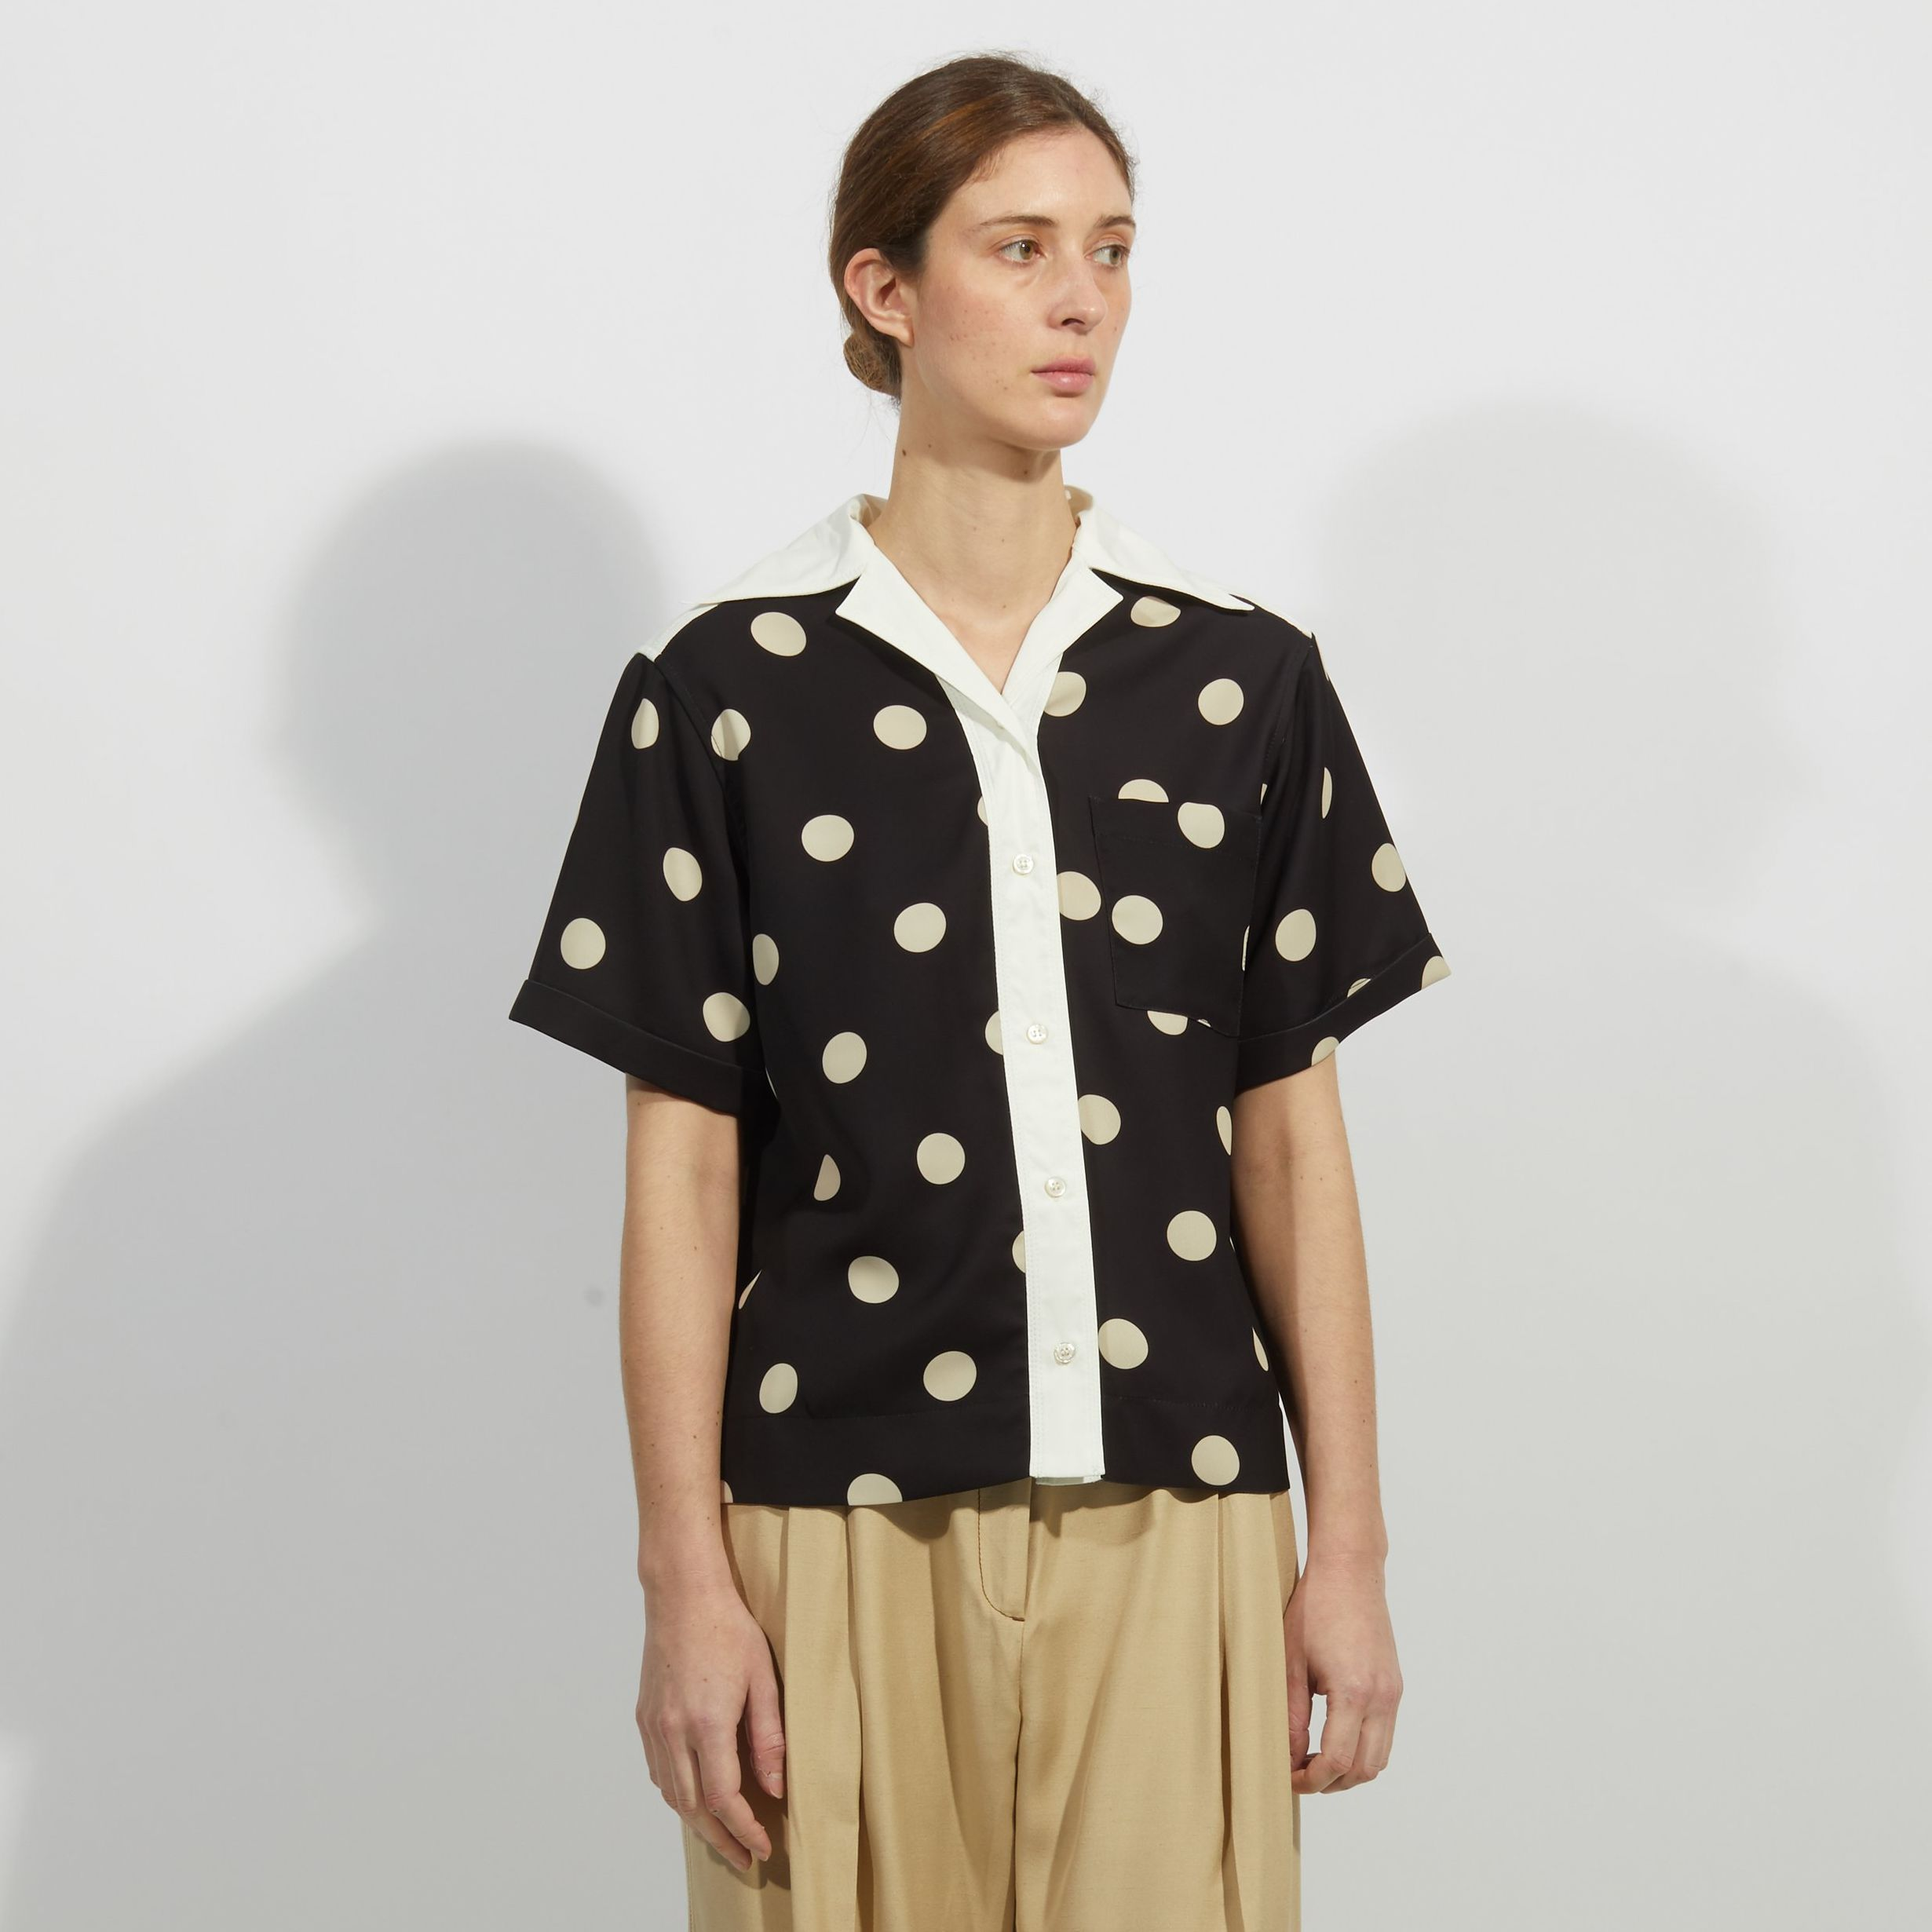 Havana Short Sleeve Shirt